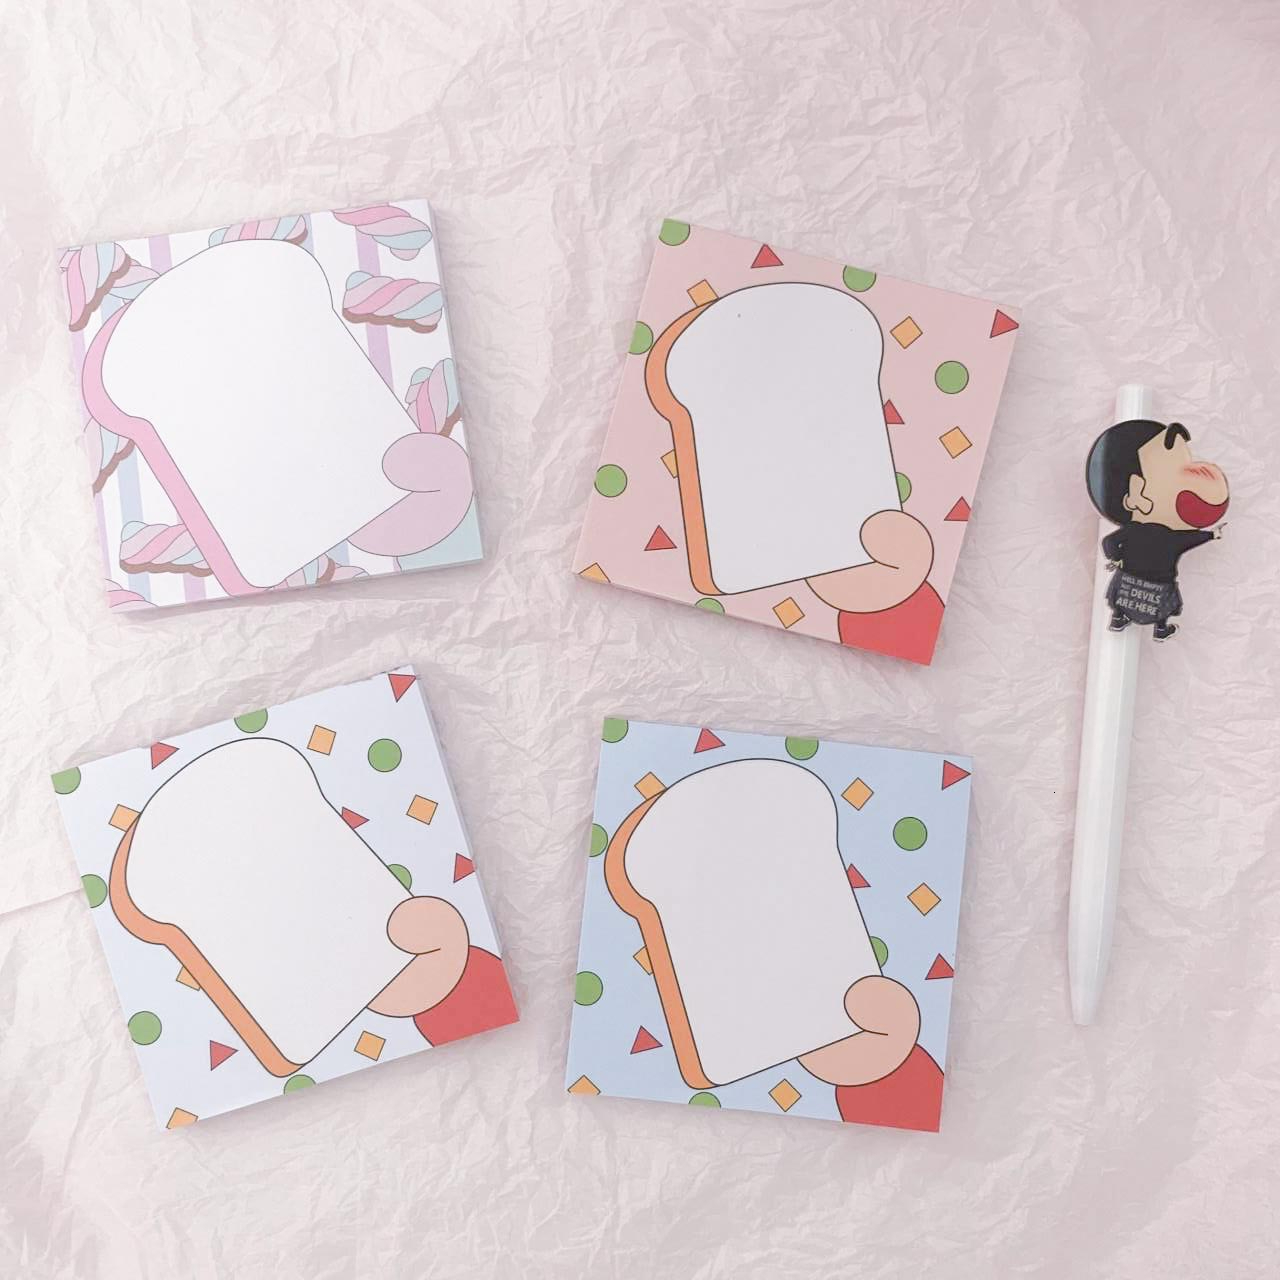 SIXONE 80 Sheets Ins Girl Heart Toast Cohesionless Leave Message Paper Kawaii Student Memo Pad Hand Account Diary Stationery